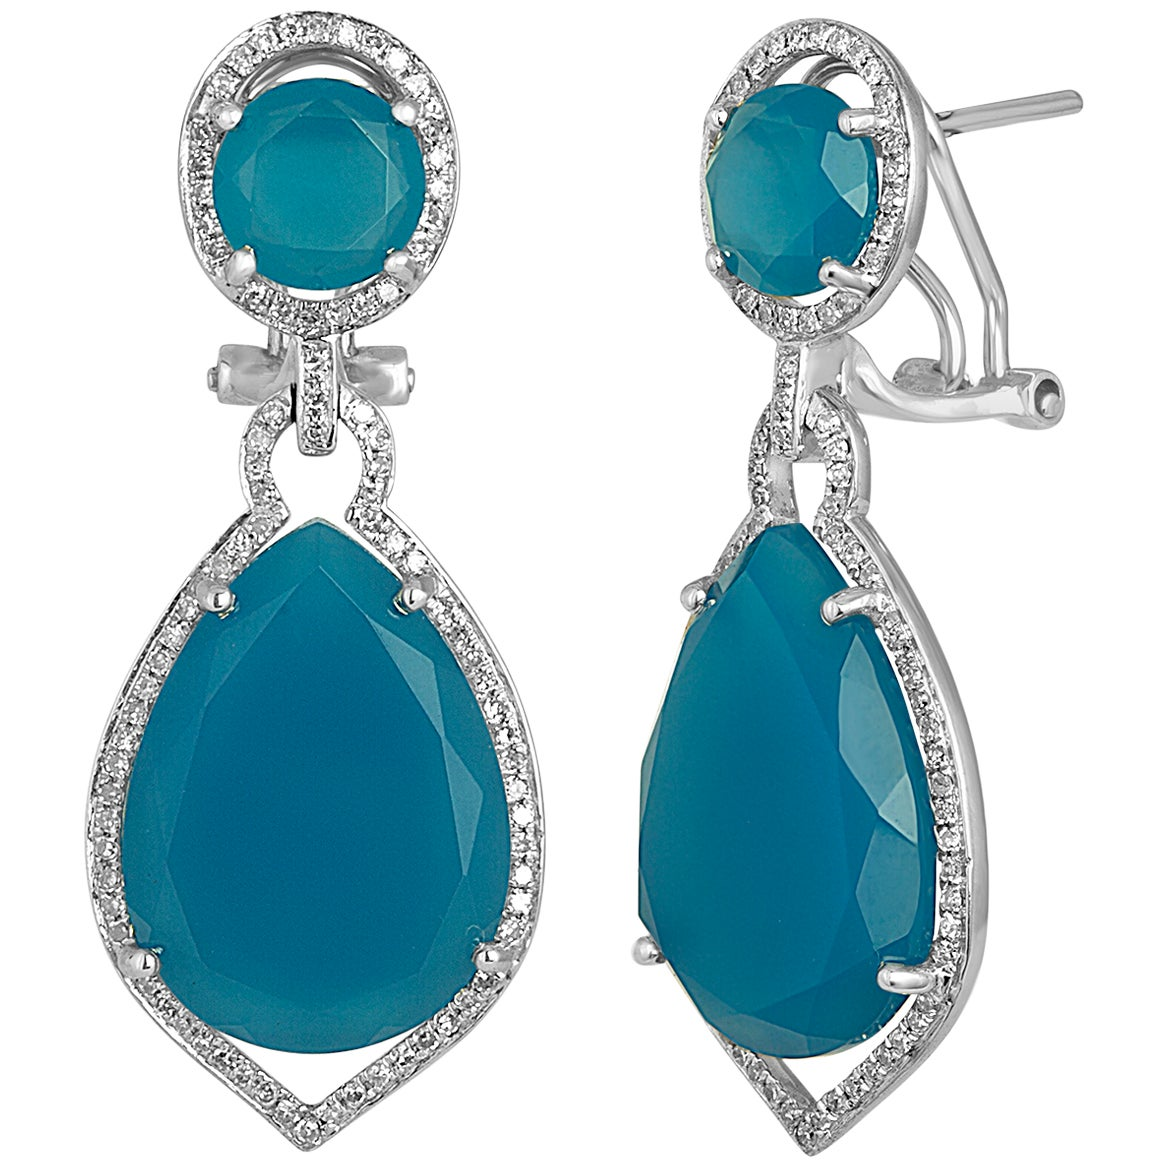 19.21 Carats Blue Agate Diamond Gold Earrings